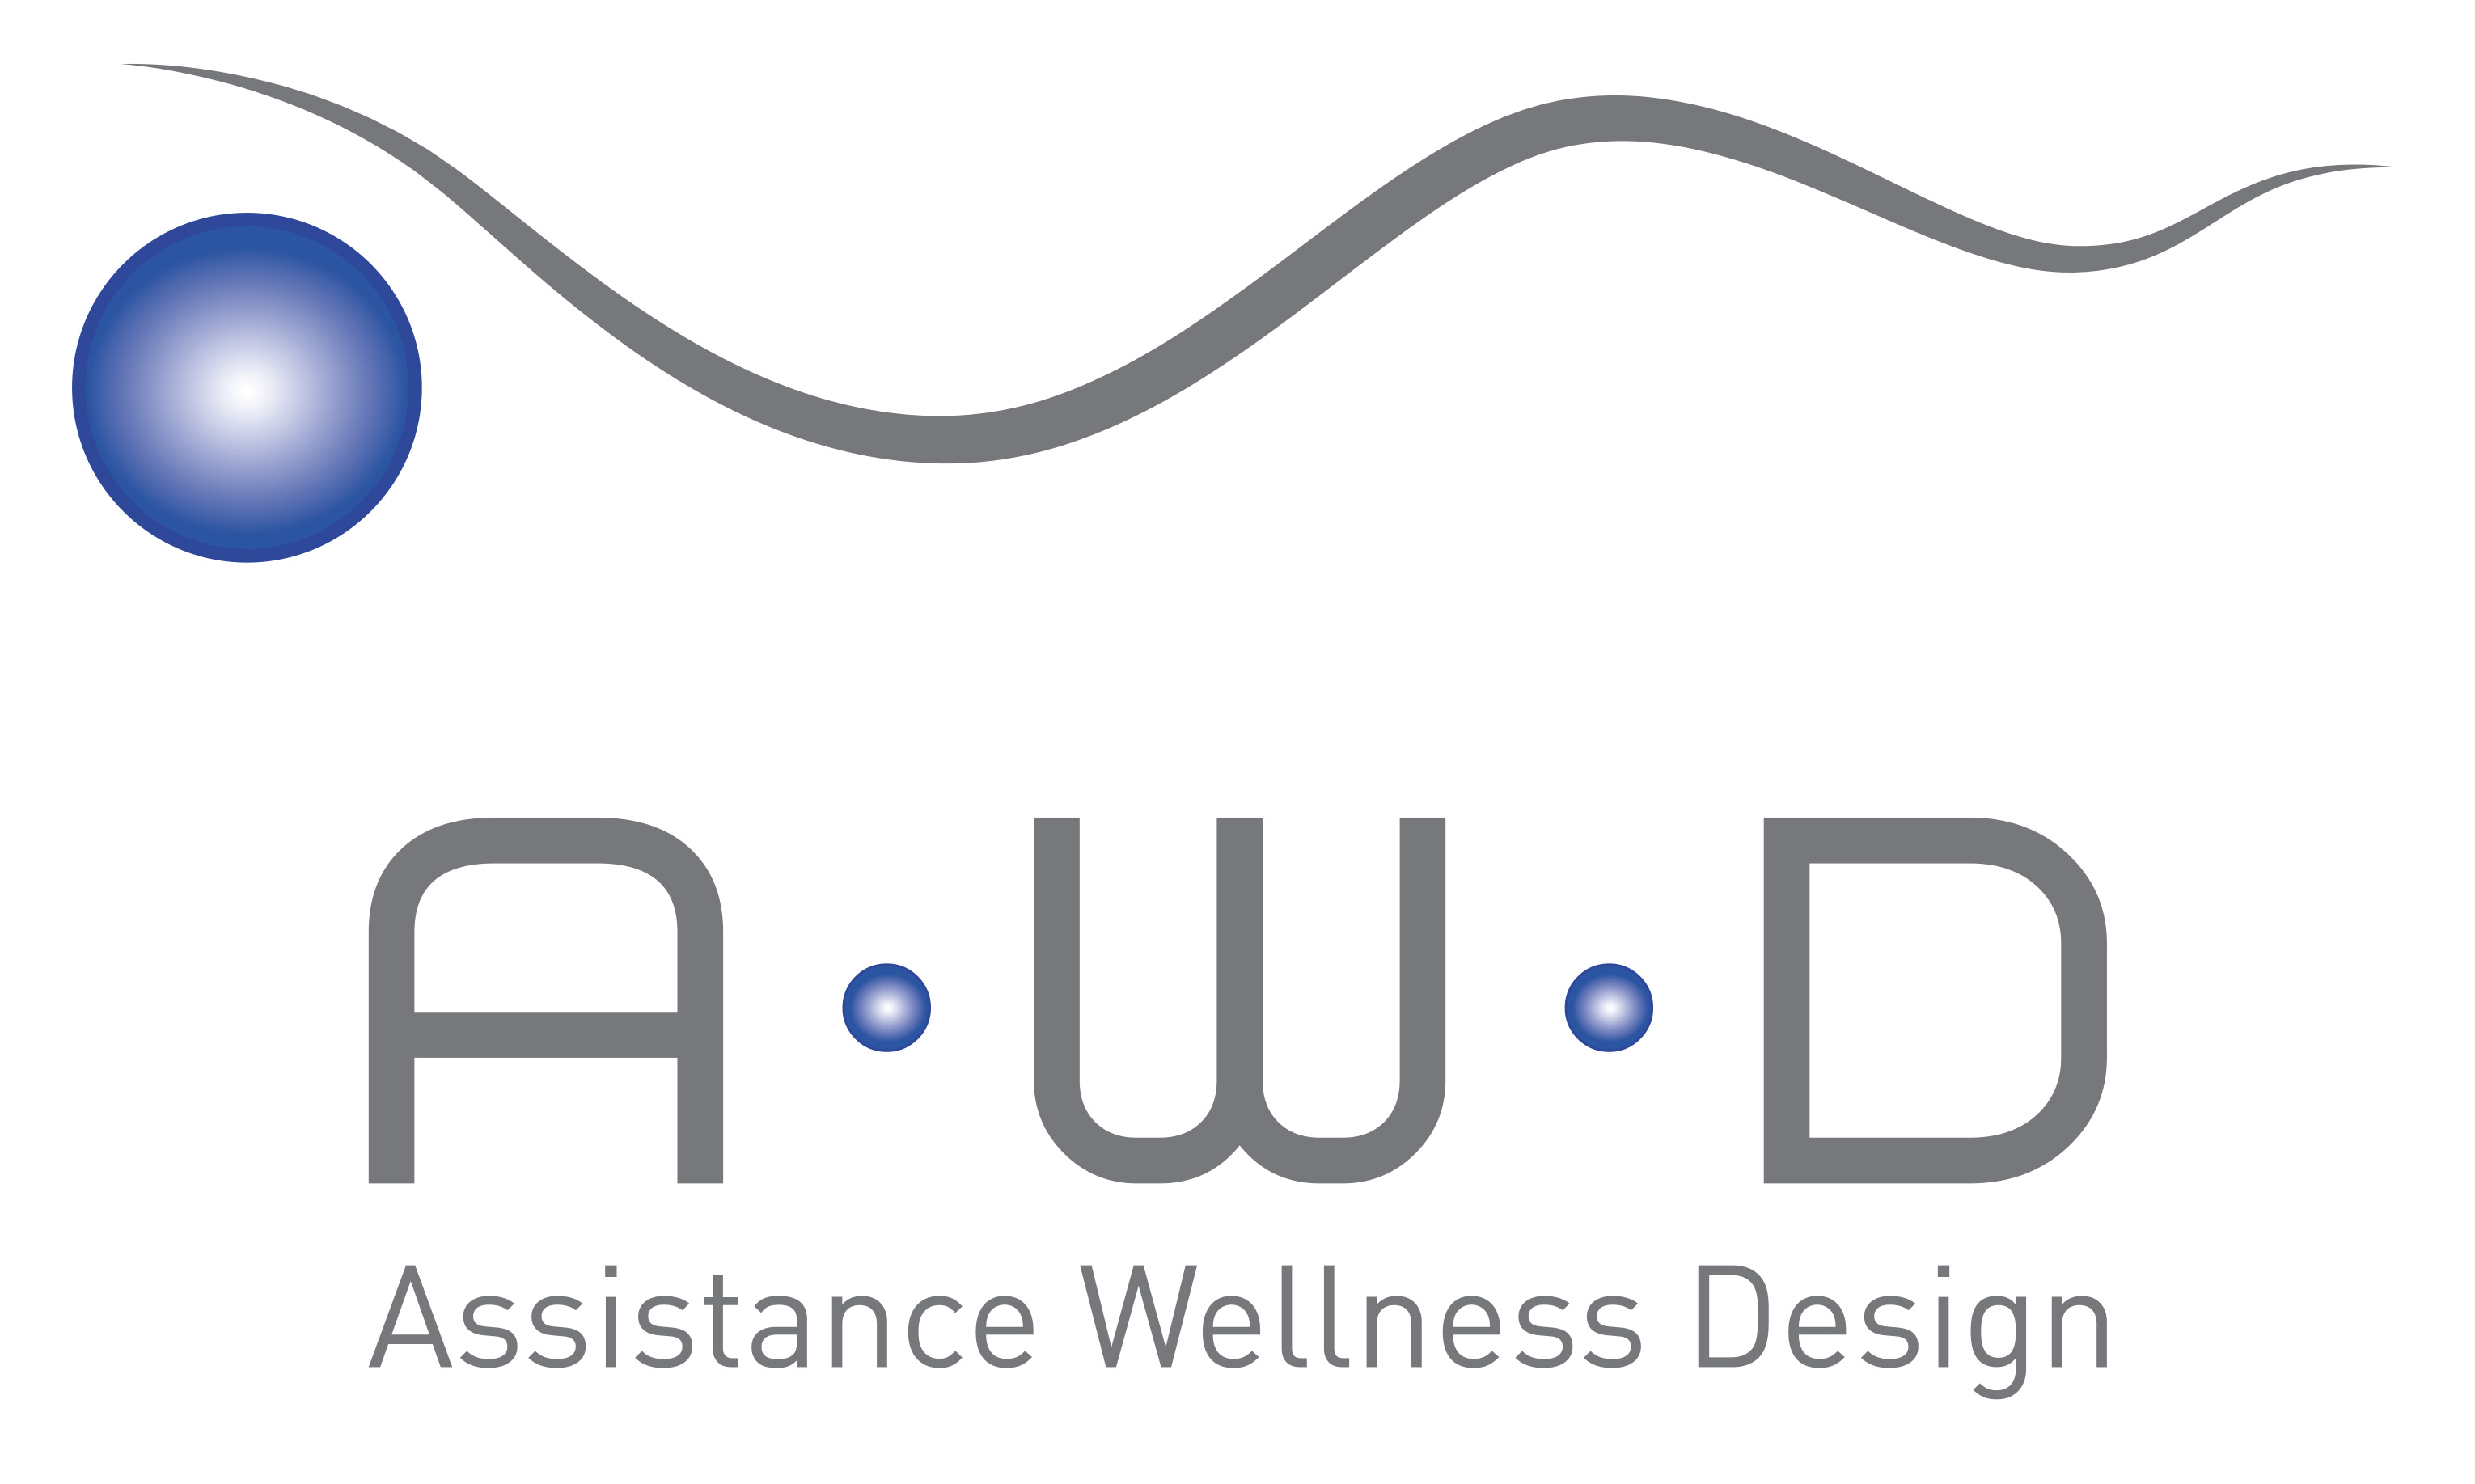 Assistance Wellness Design